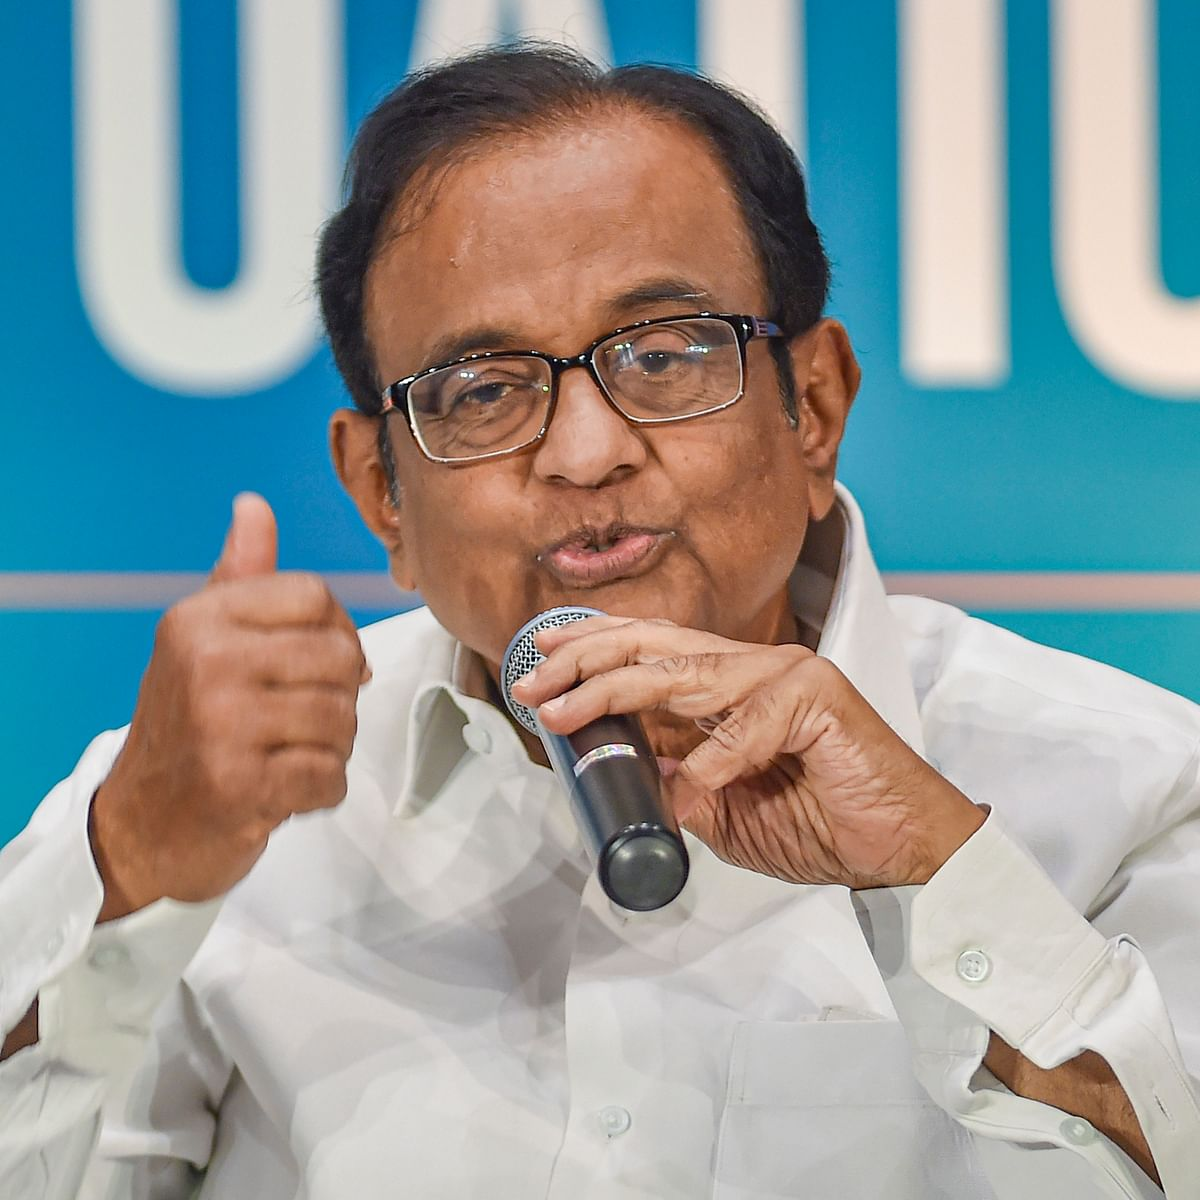 J&K parties want statehood, Centre insists on elections first: Chidambaram